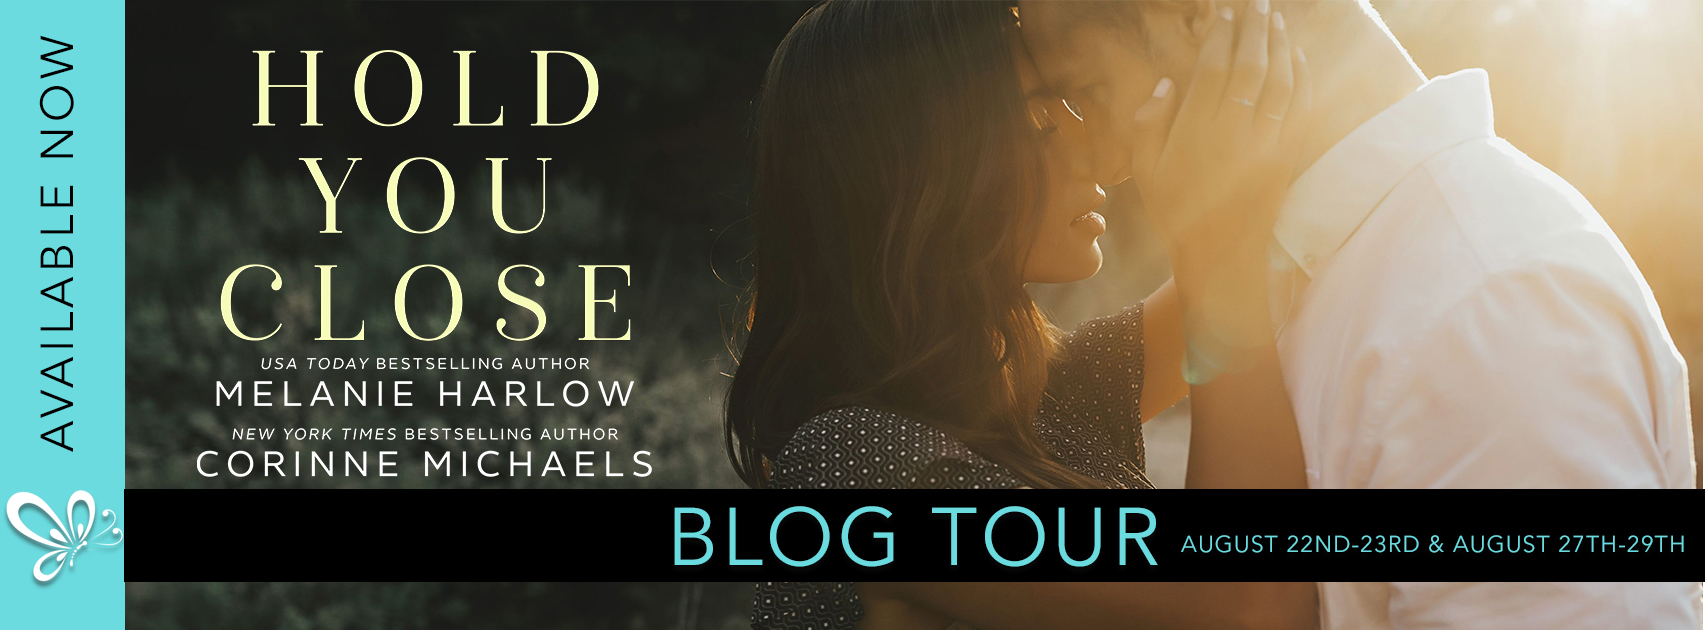 Hold You Close Blog Tour